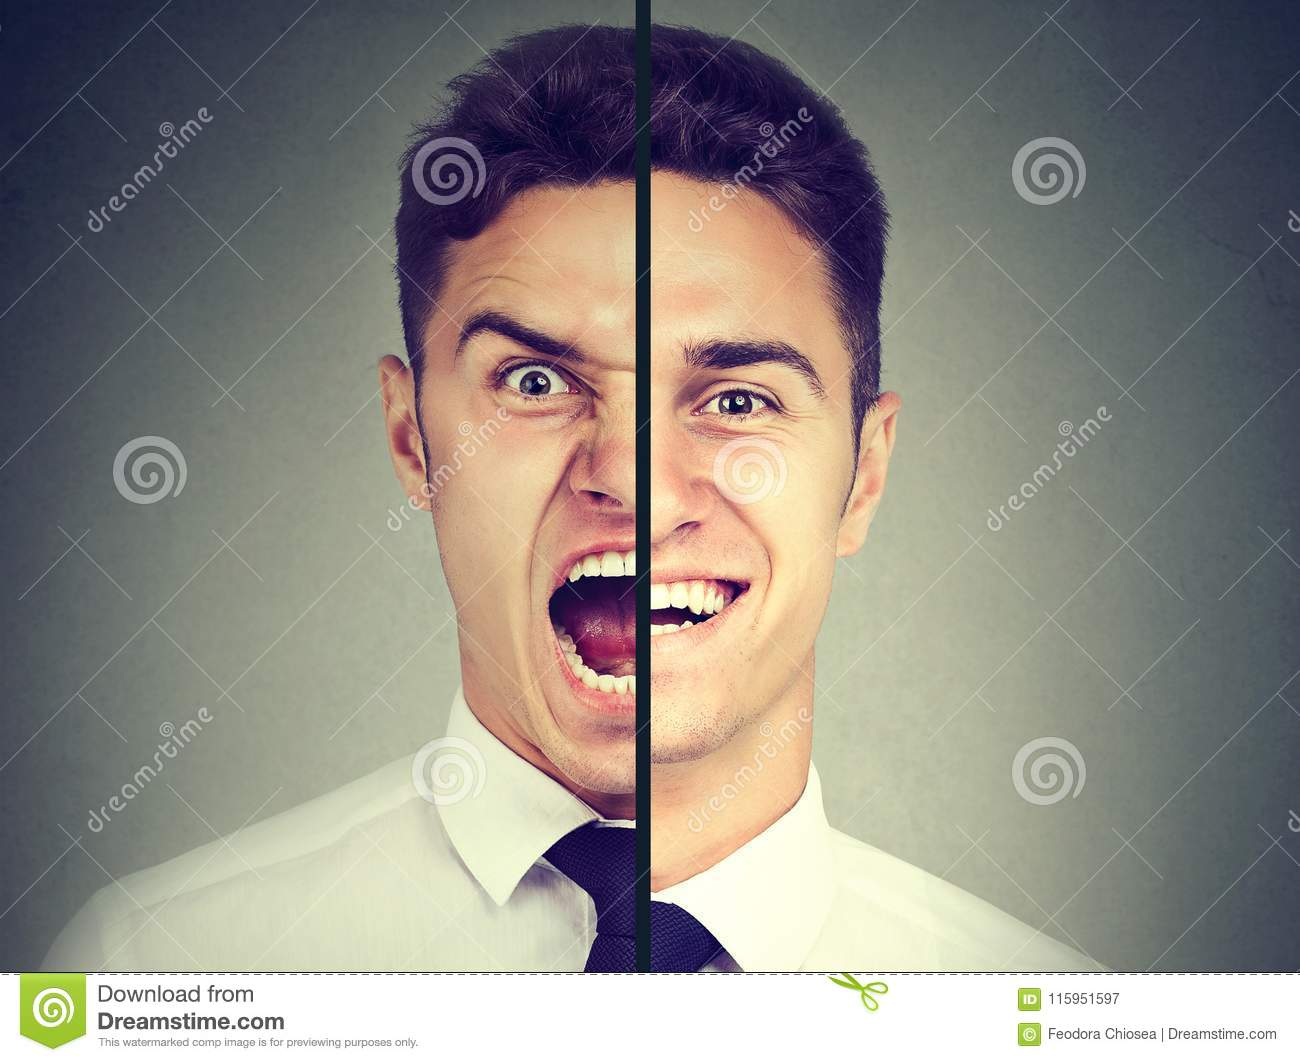 Bipolar disorder. Business man with double face expression